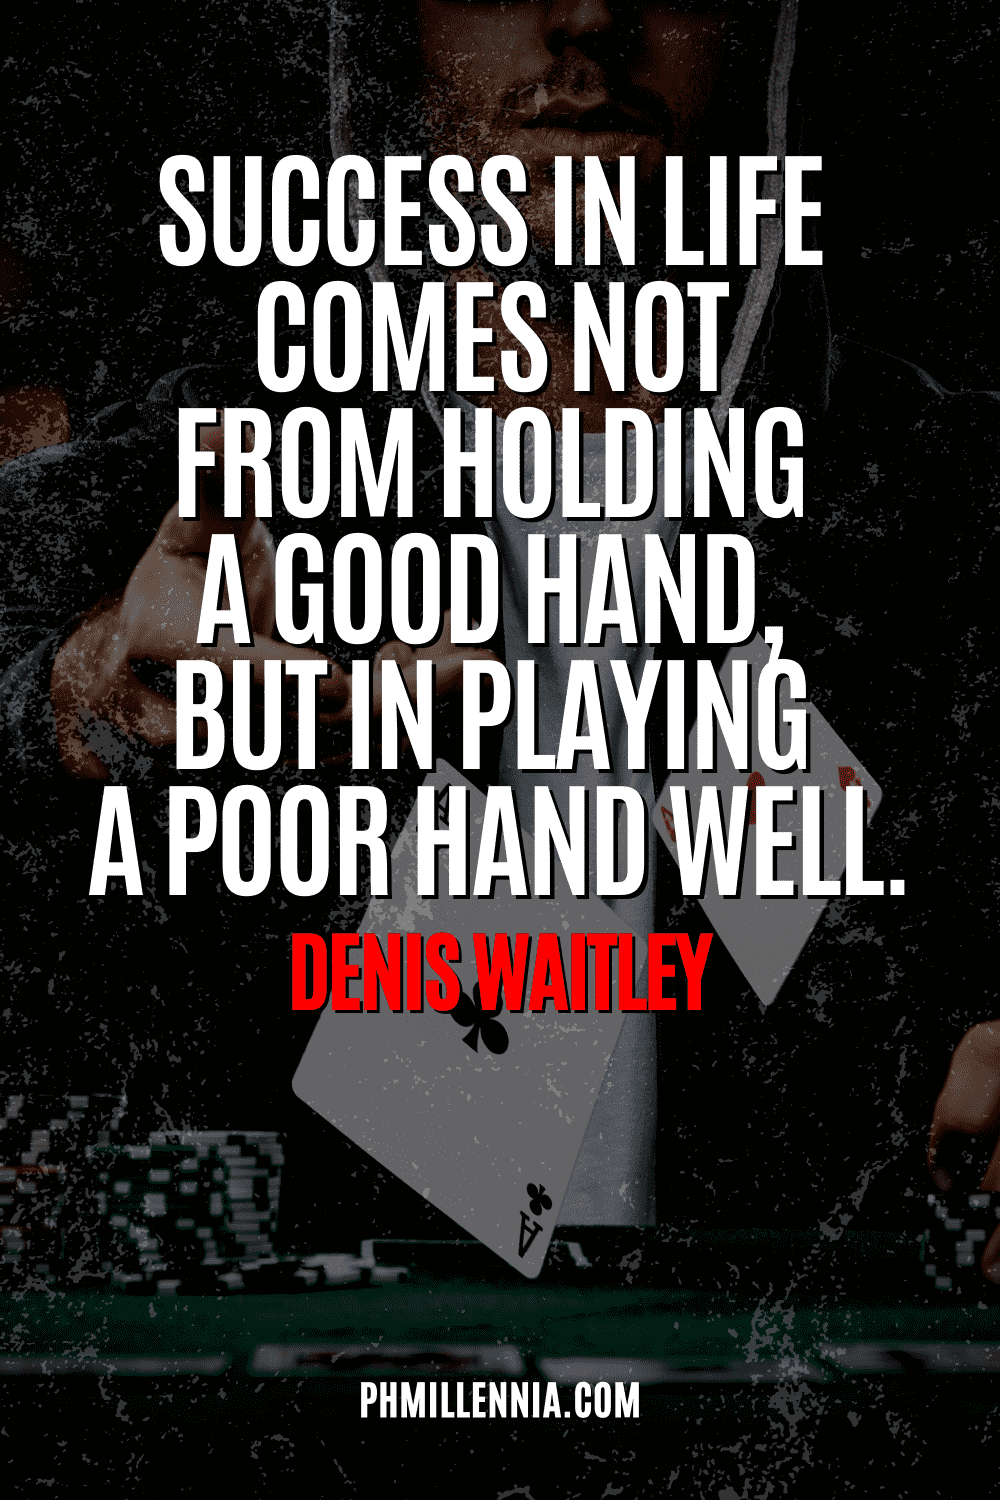 """A graphic containing text on an image of a man throwing a bunch of cards, intended as a Pinterest Pin for the article """"199 Quotes on Success to Inspire You to Greatness"""" on phmillennia.com"""